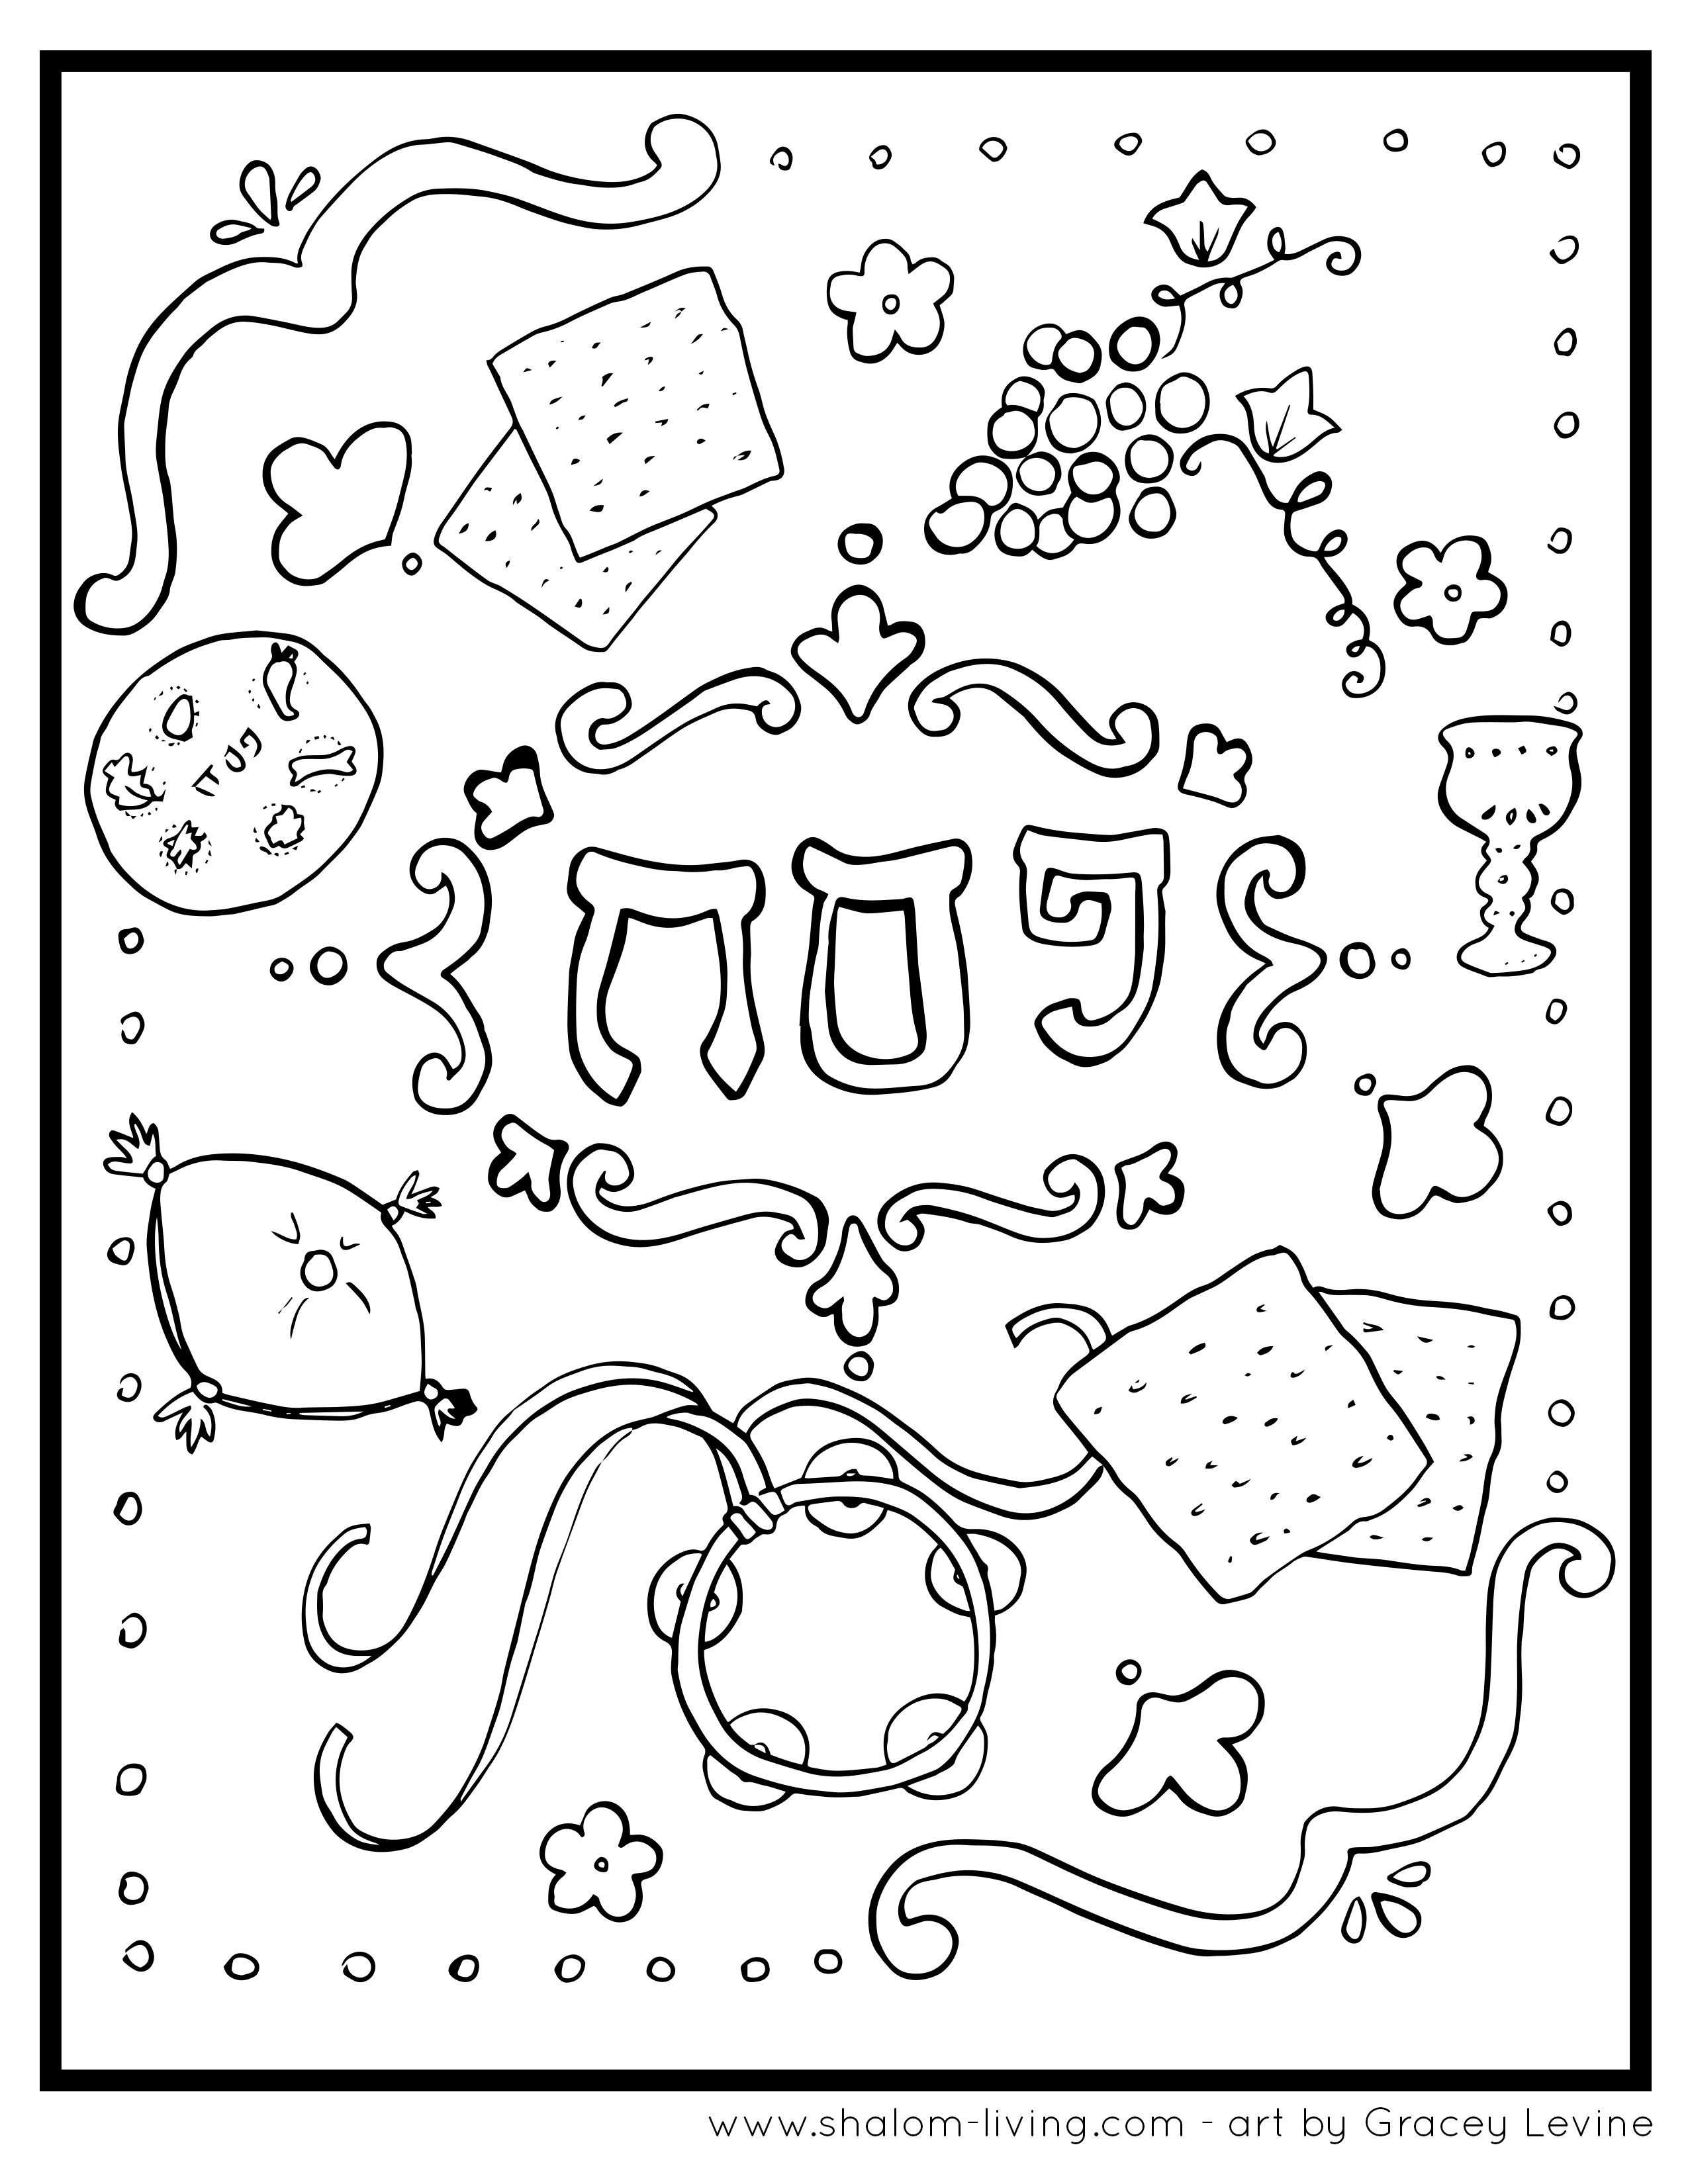 Free Passover Coloring Pages At Shalom Living Coloring Pages